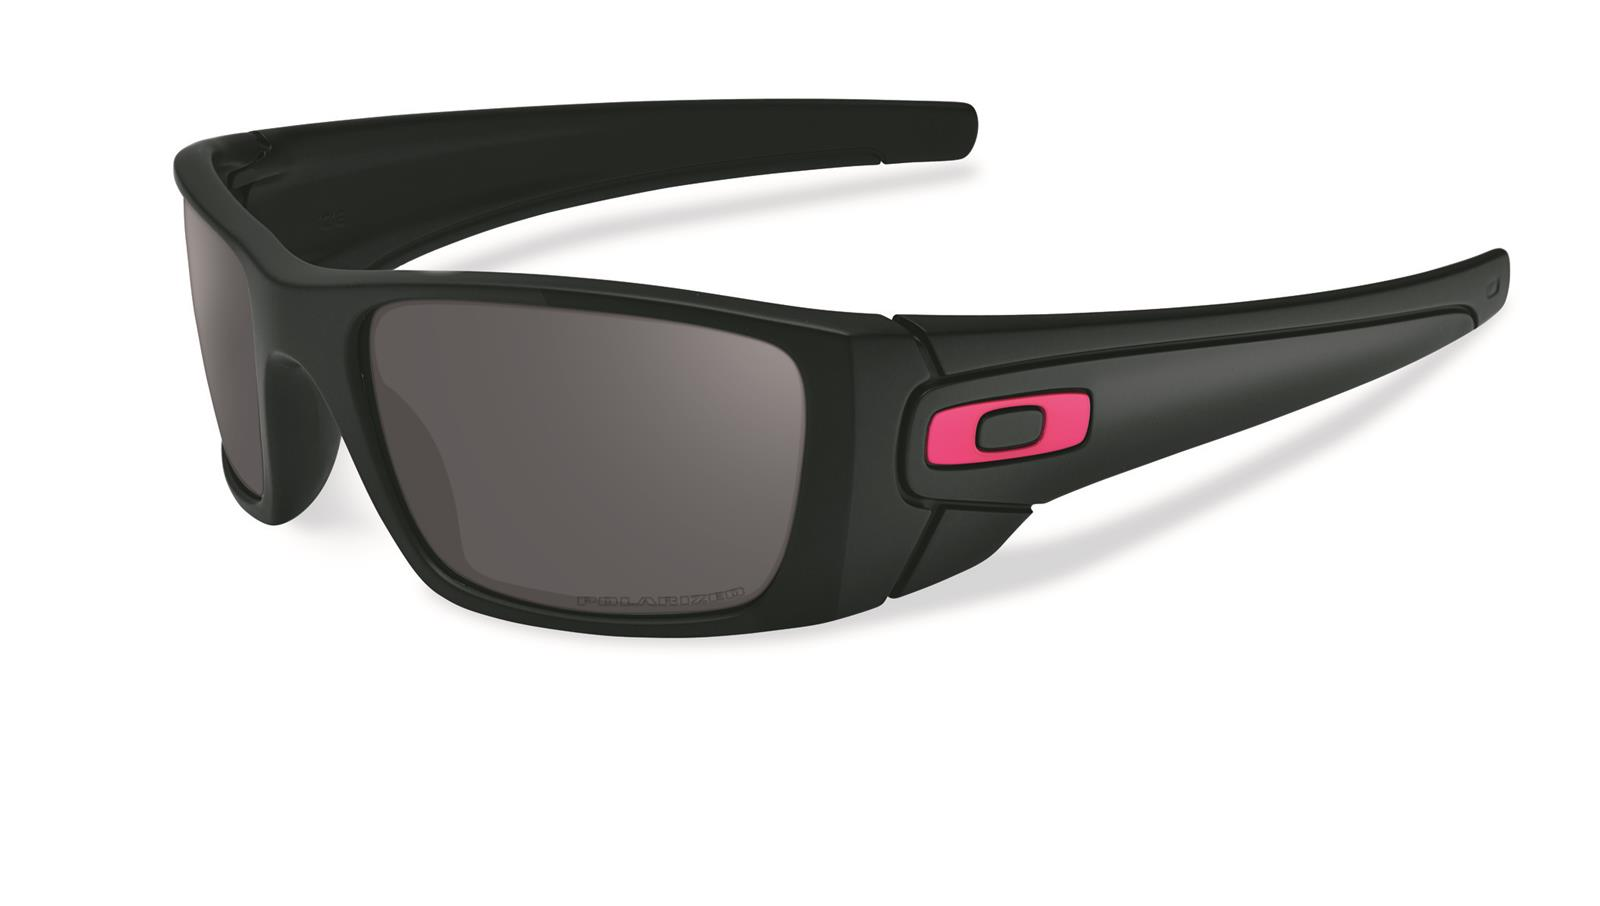 oakley womens sunglasses breast cancer  oakley fuel cell breast cancer awareness edition sunglasses oo9096 80 free shipping on orders over $99 at summit racing